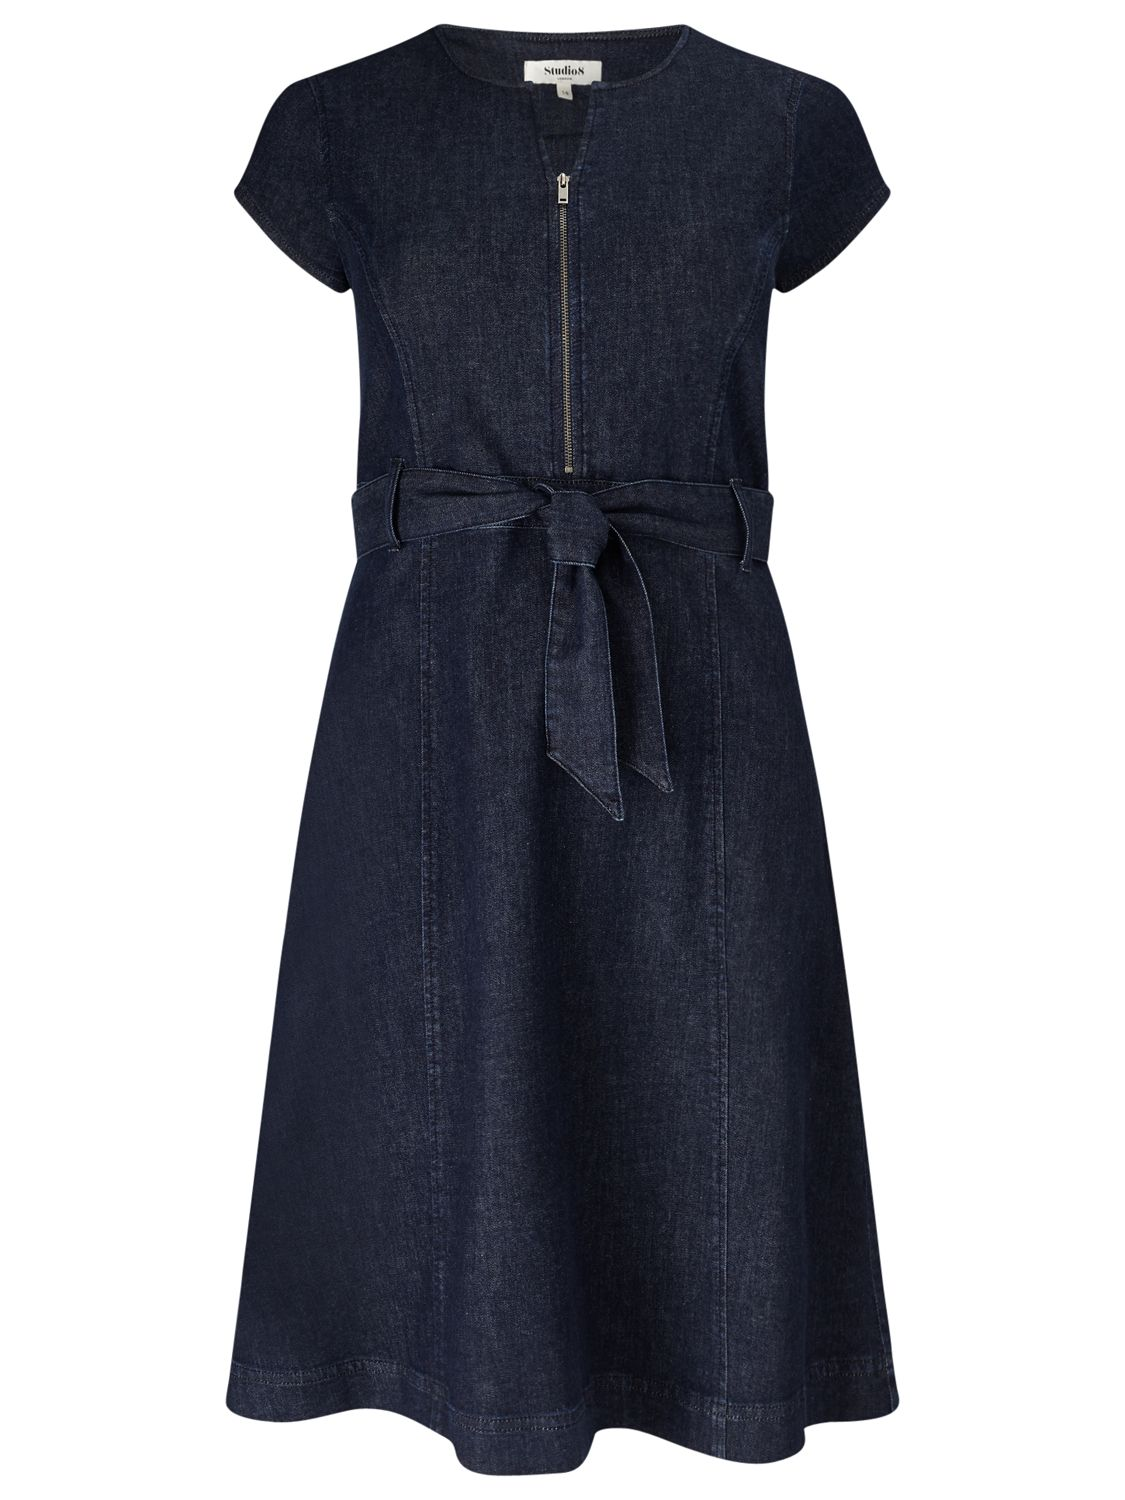 Studio 8 Studio 8 Rea Dress, Indigo